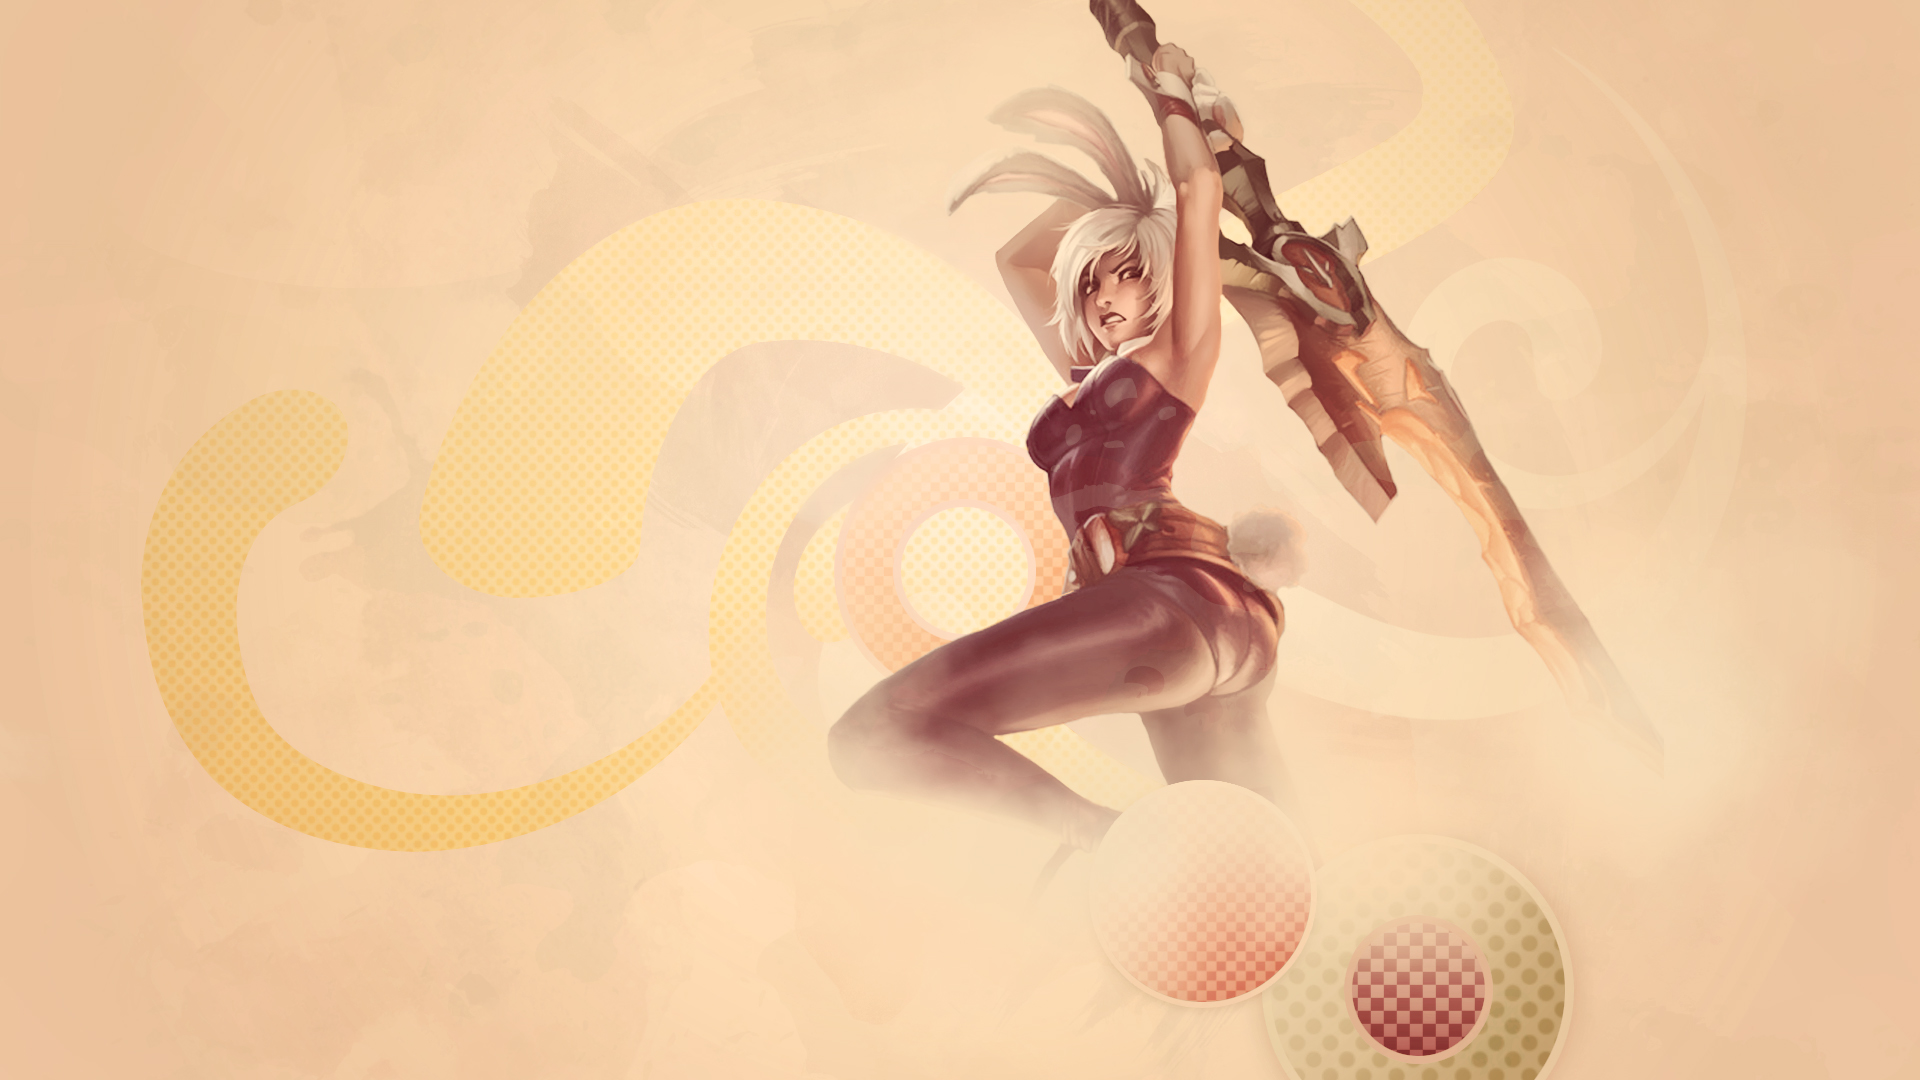 Battle Bunny Riven Wallpaper By Uberkayt